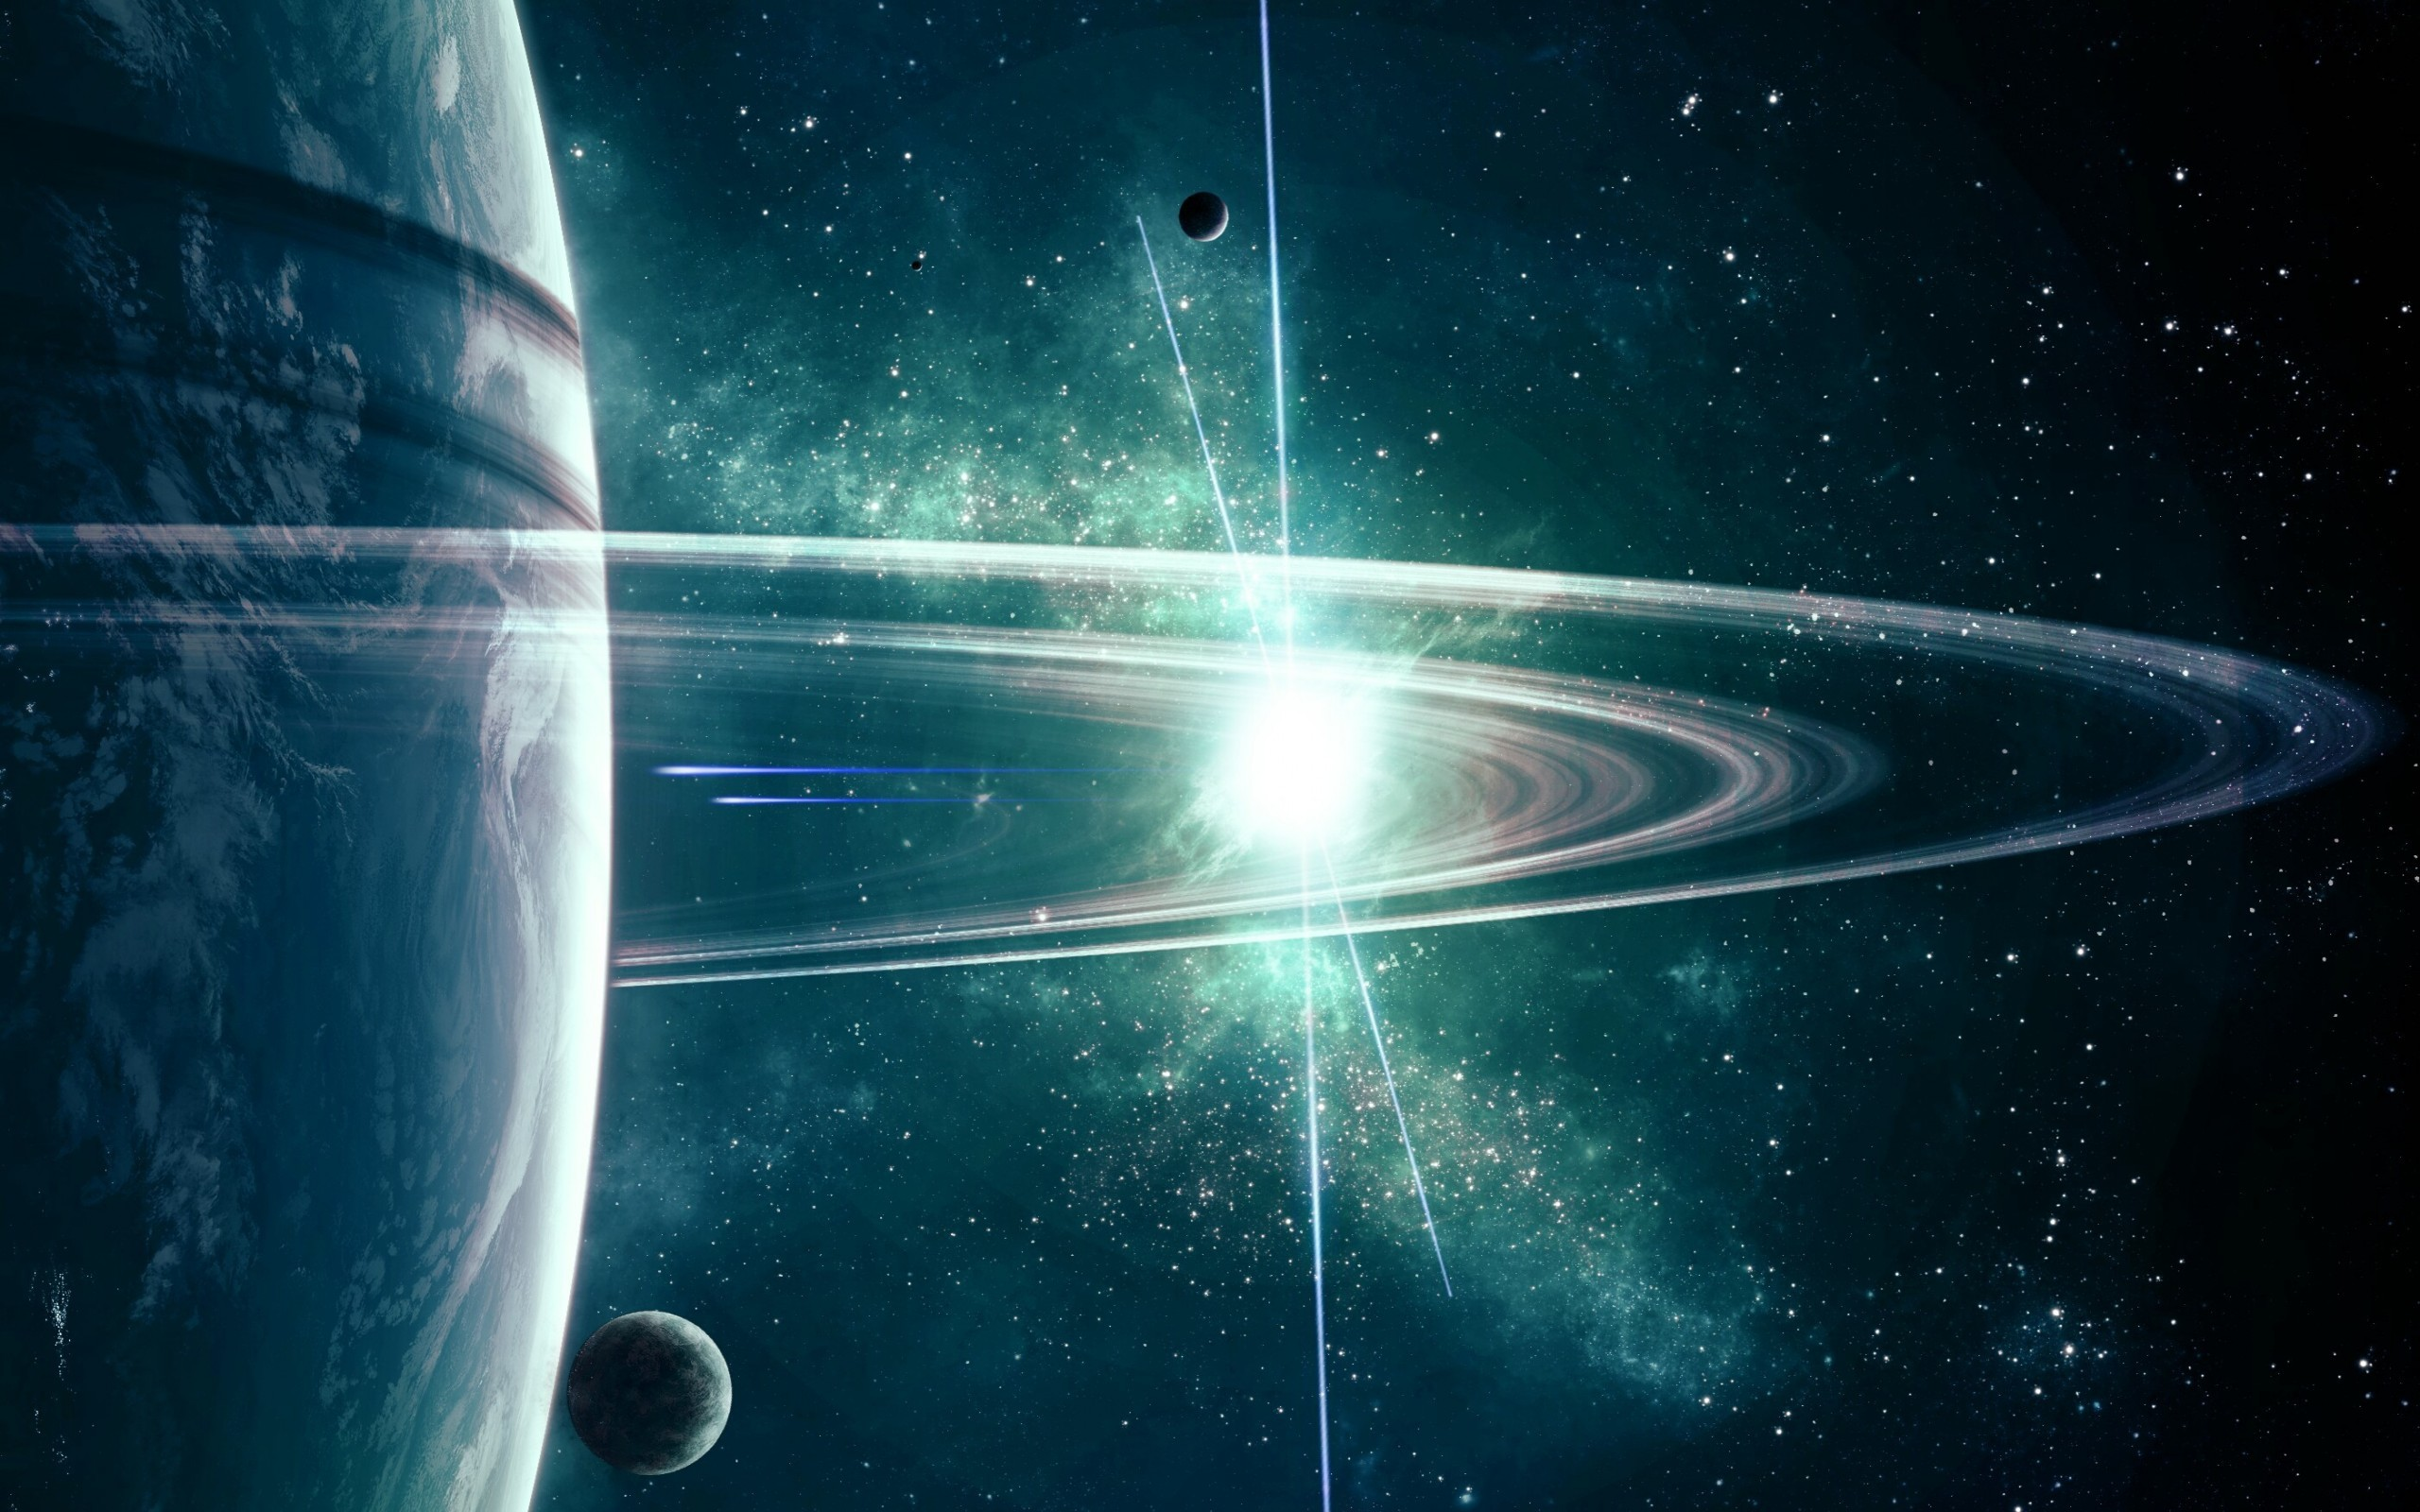 desktop outer space pics of planets dowload